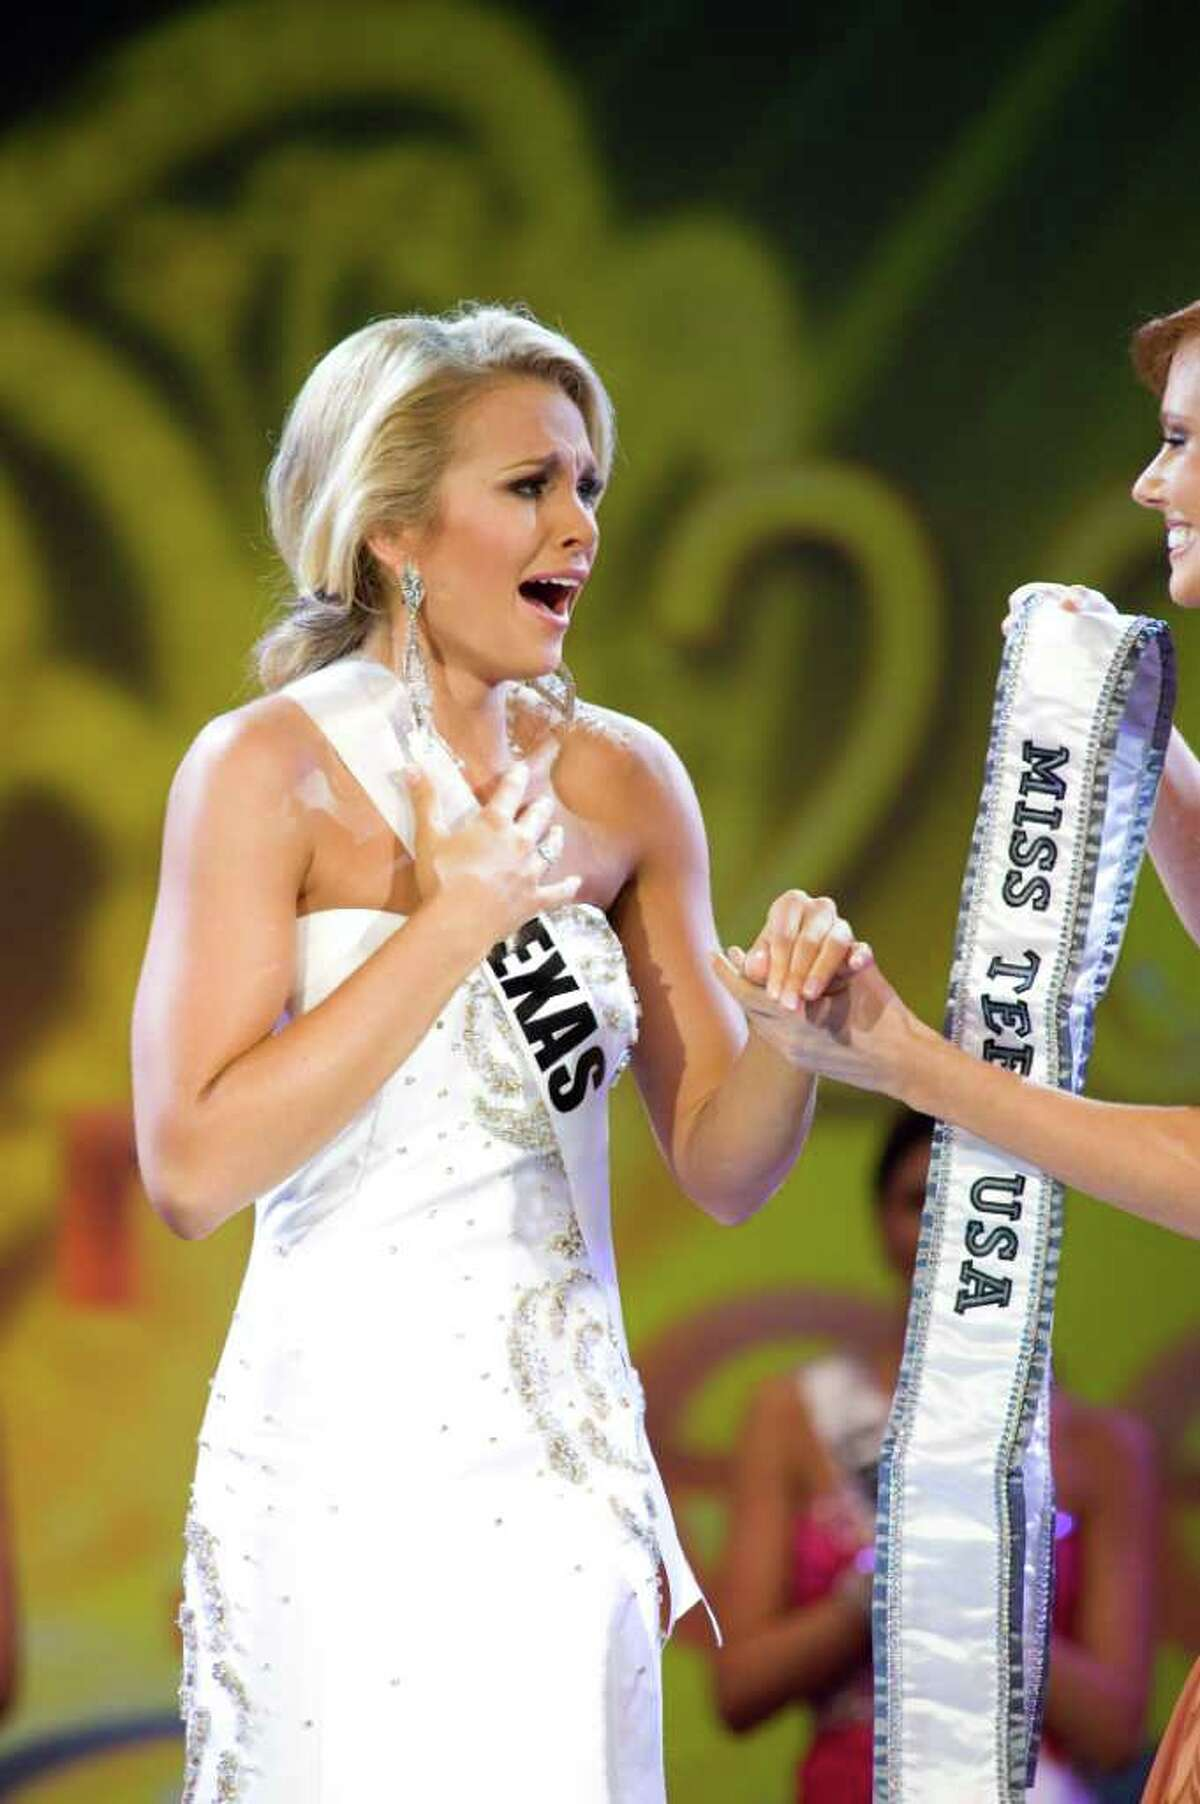 Miss Texas Teen USA 2011, Danielle Doty, prepares to receive the Miss Teen USA sash from Miss USA Alyssa Campanella.